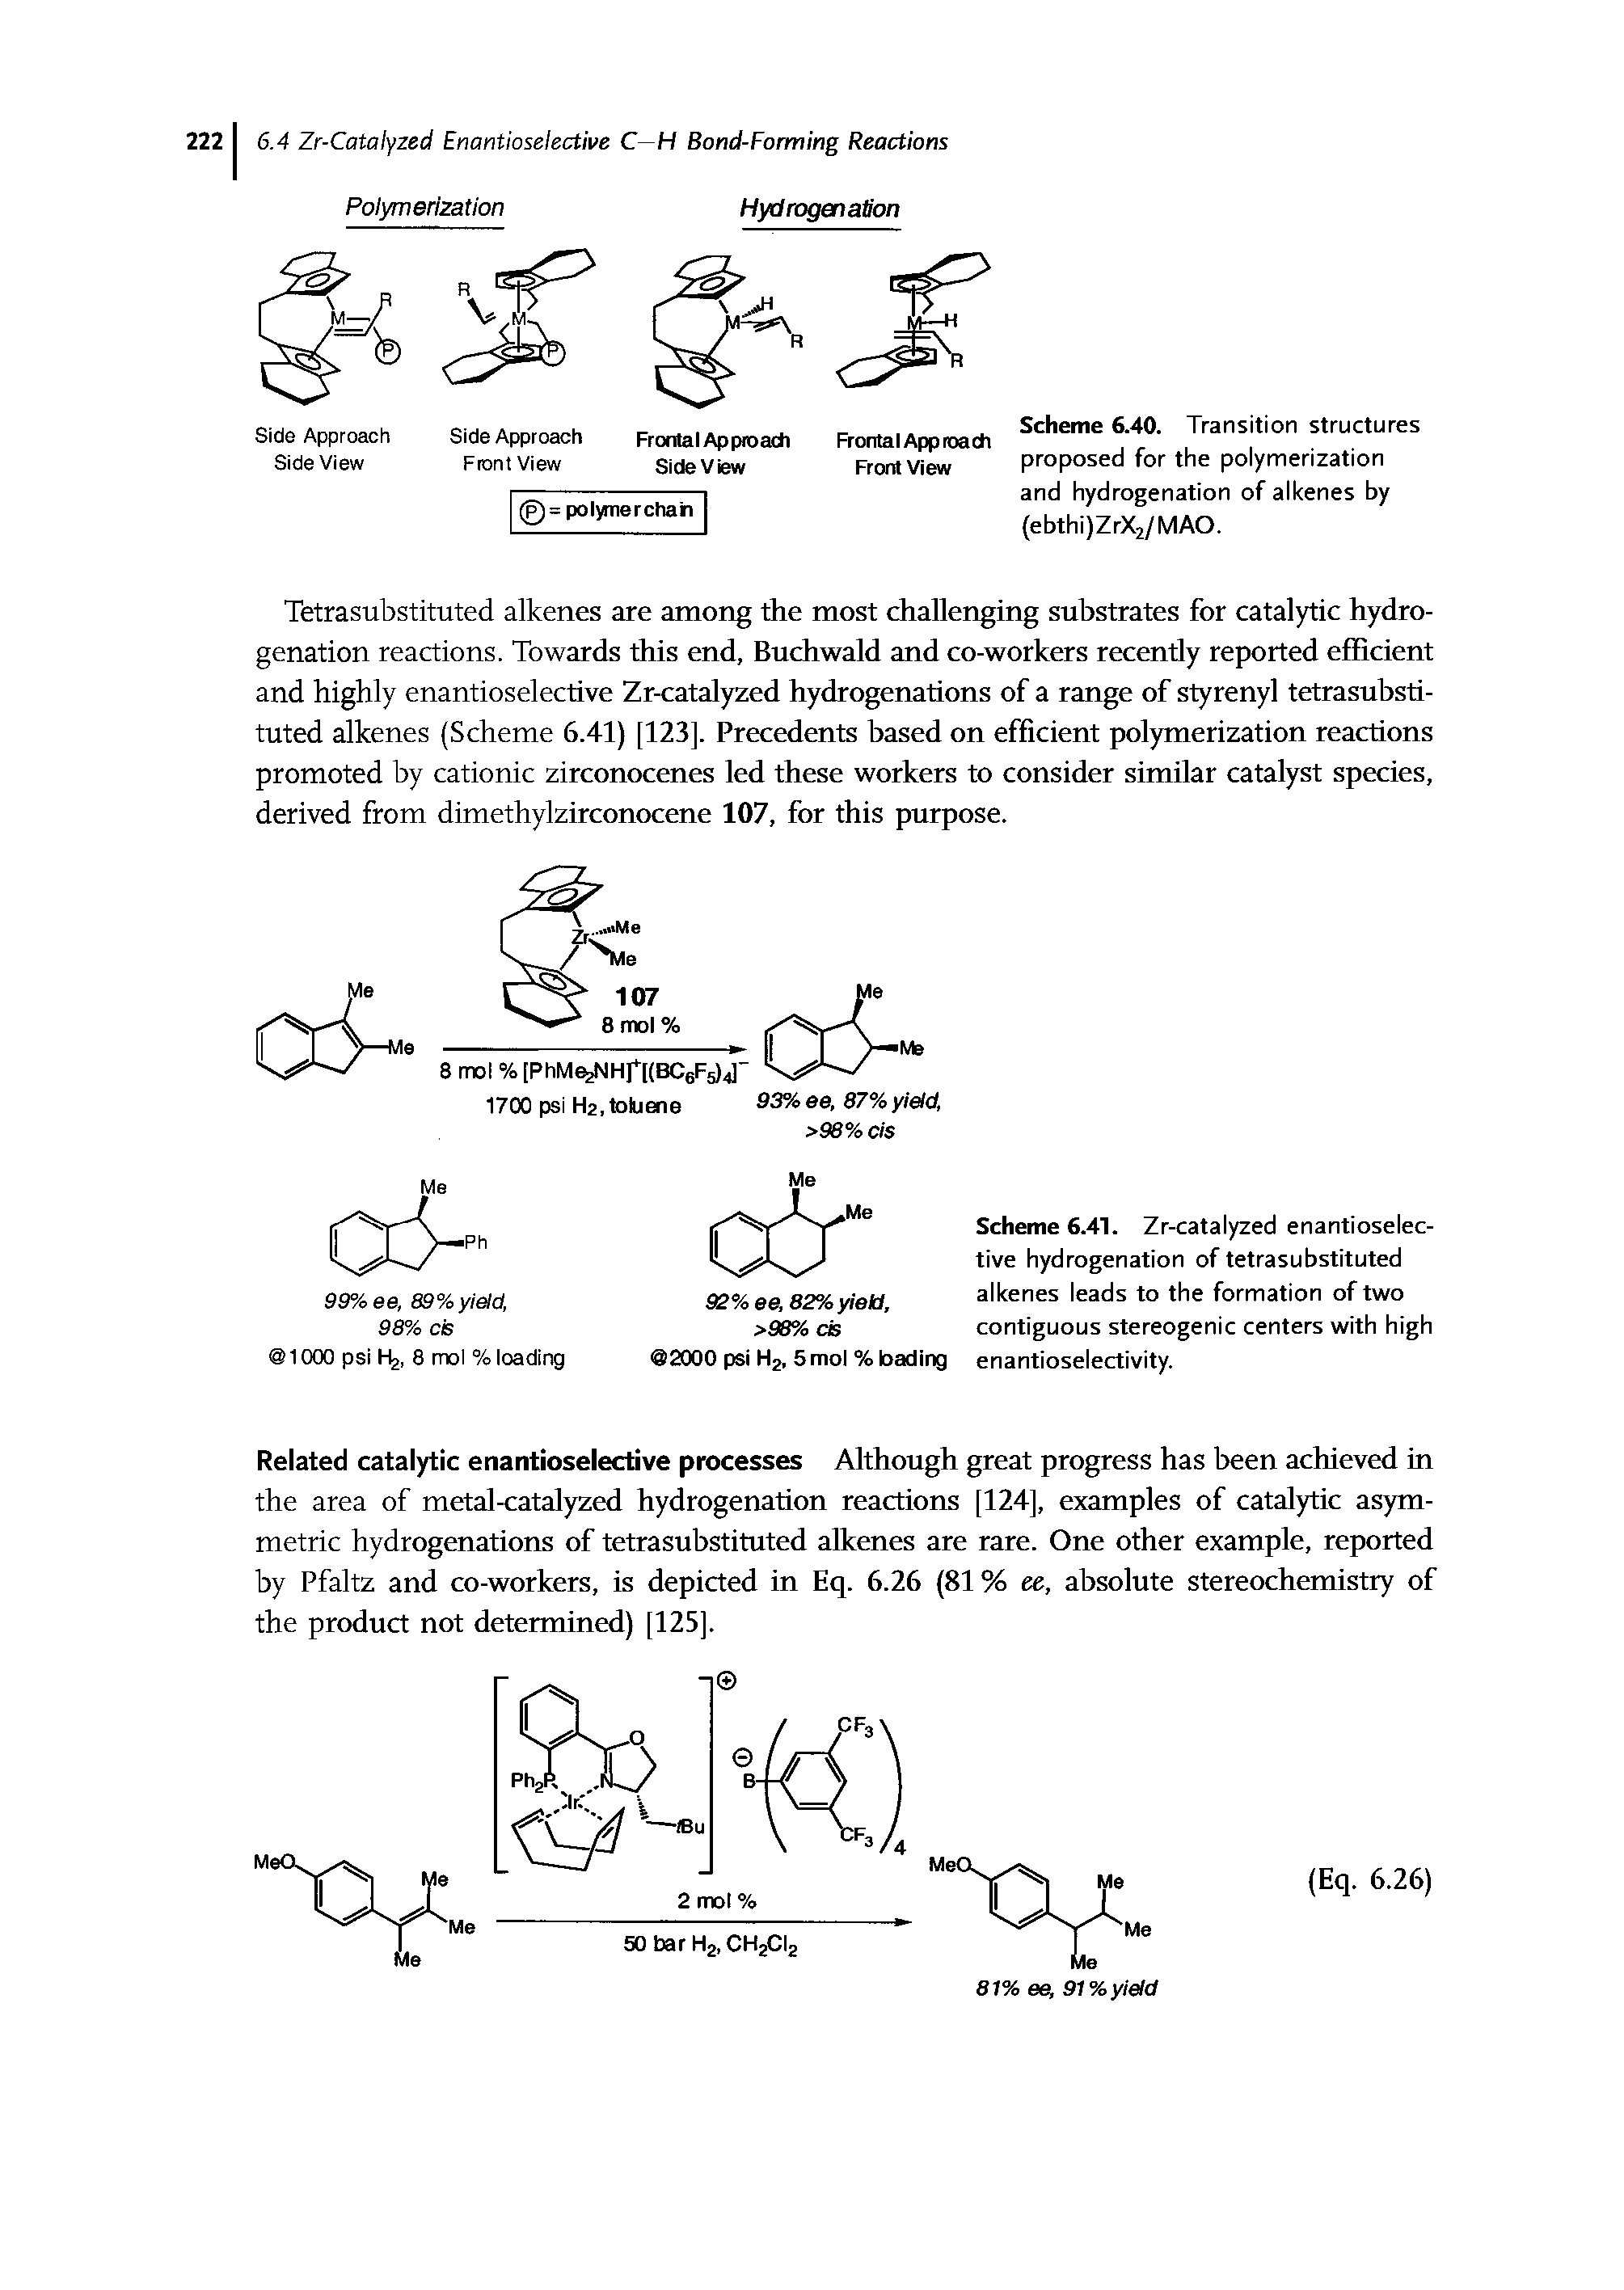 "Scheme 6.41. Zr-<a href=""/info/enantioselective_ru_catalyzed"">catalyzed enantioselective</a> hydrogenation of <a href=""/info/tetrasubstituted_alkenes"">tetrasubstituted alkenes</a> leads to the formation of two contiguous stereogenic centers with high enantioselectivity."